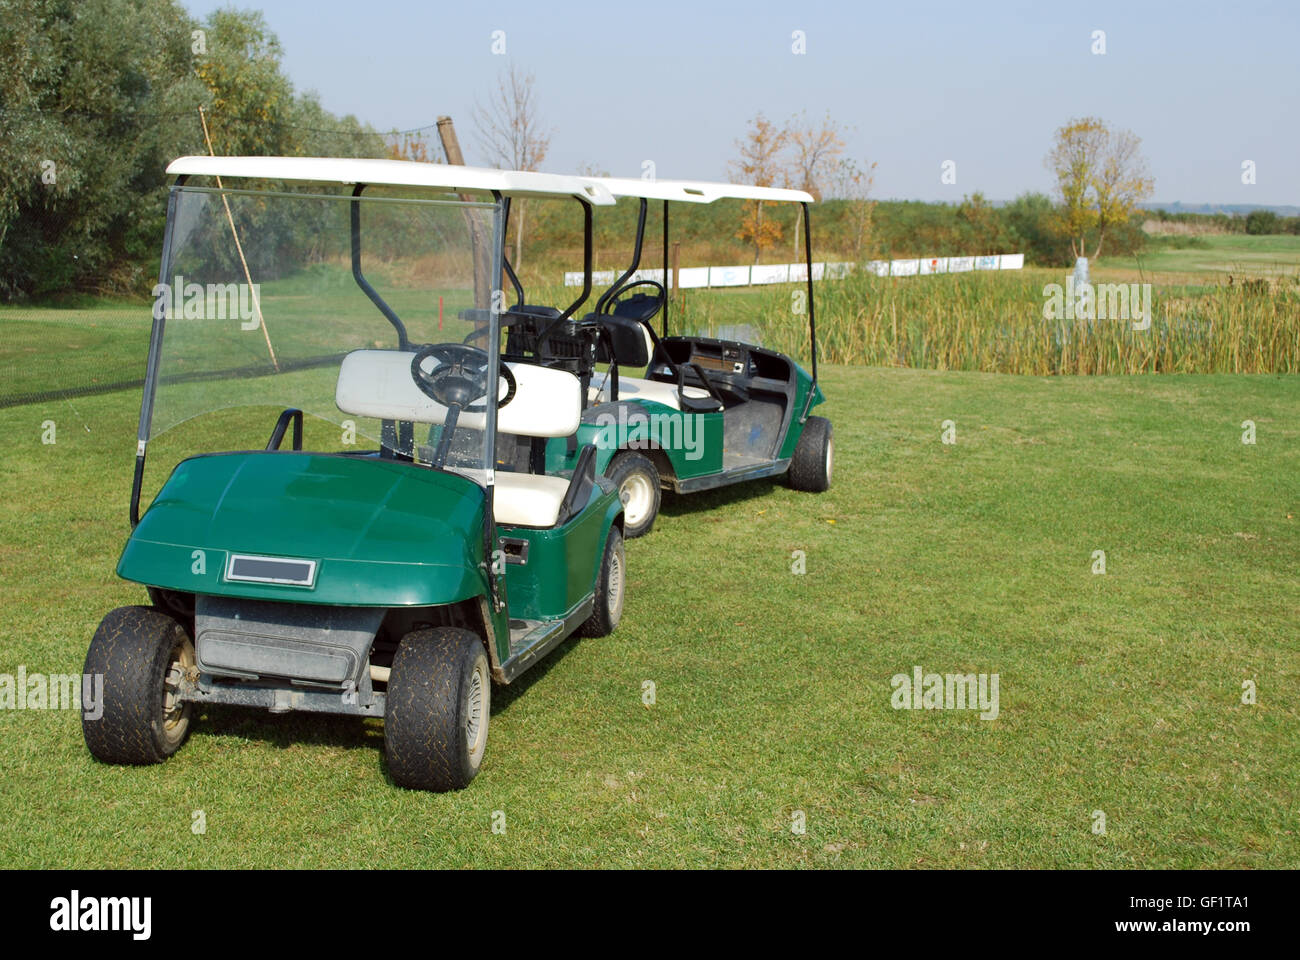 golf electric buggy - Stock Image